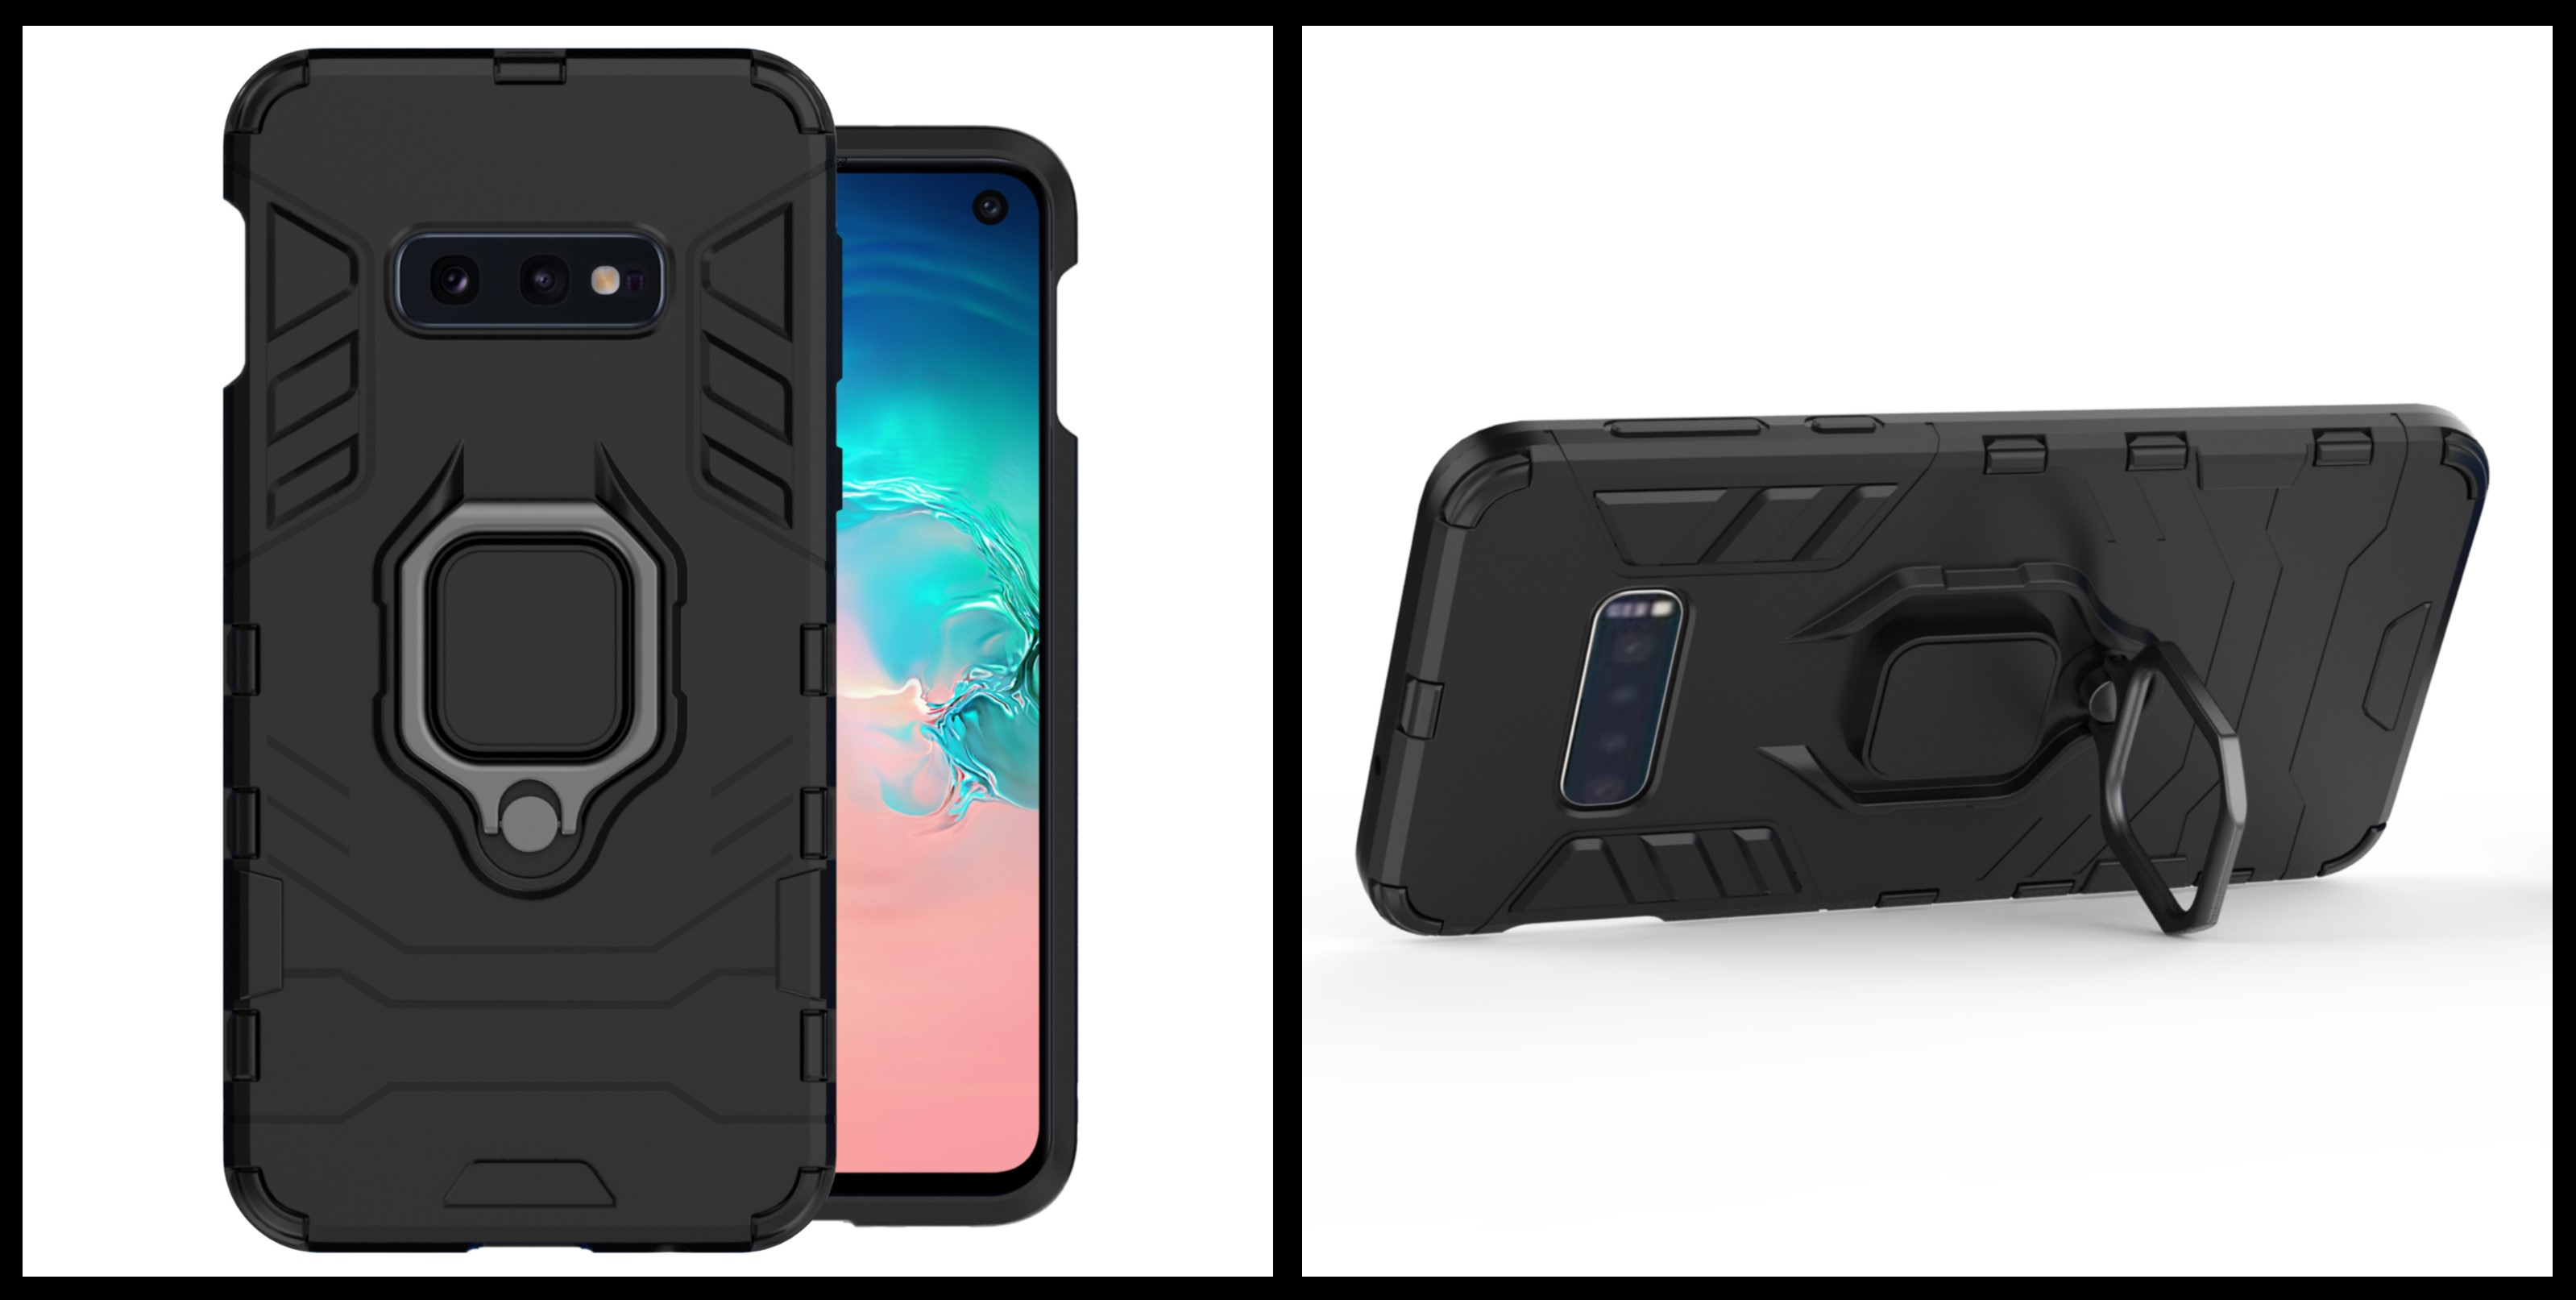 noziroh tank samsung galaxy s10e cover case silicone military design shockproof black